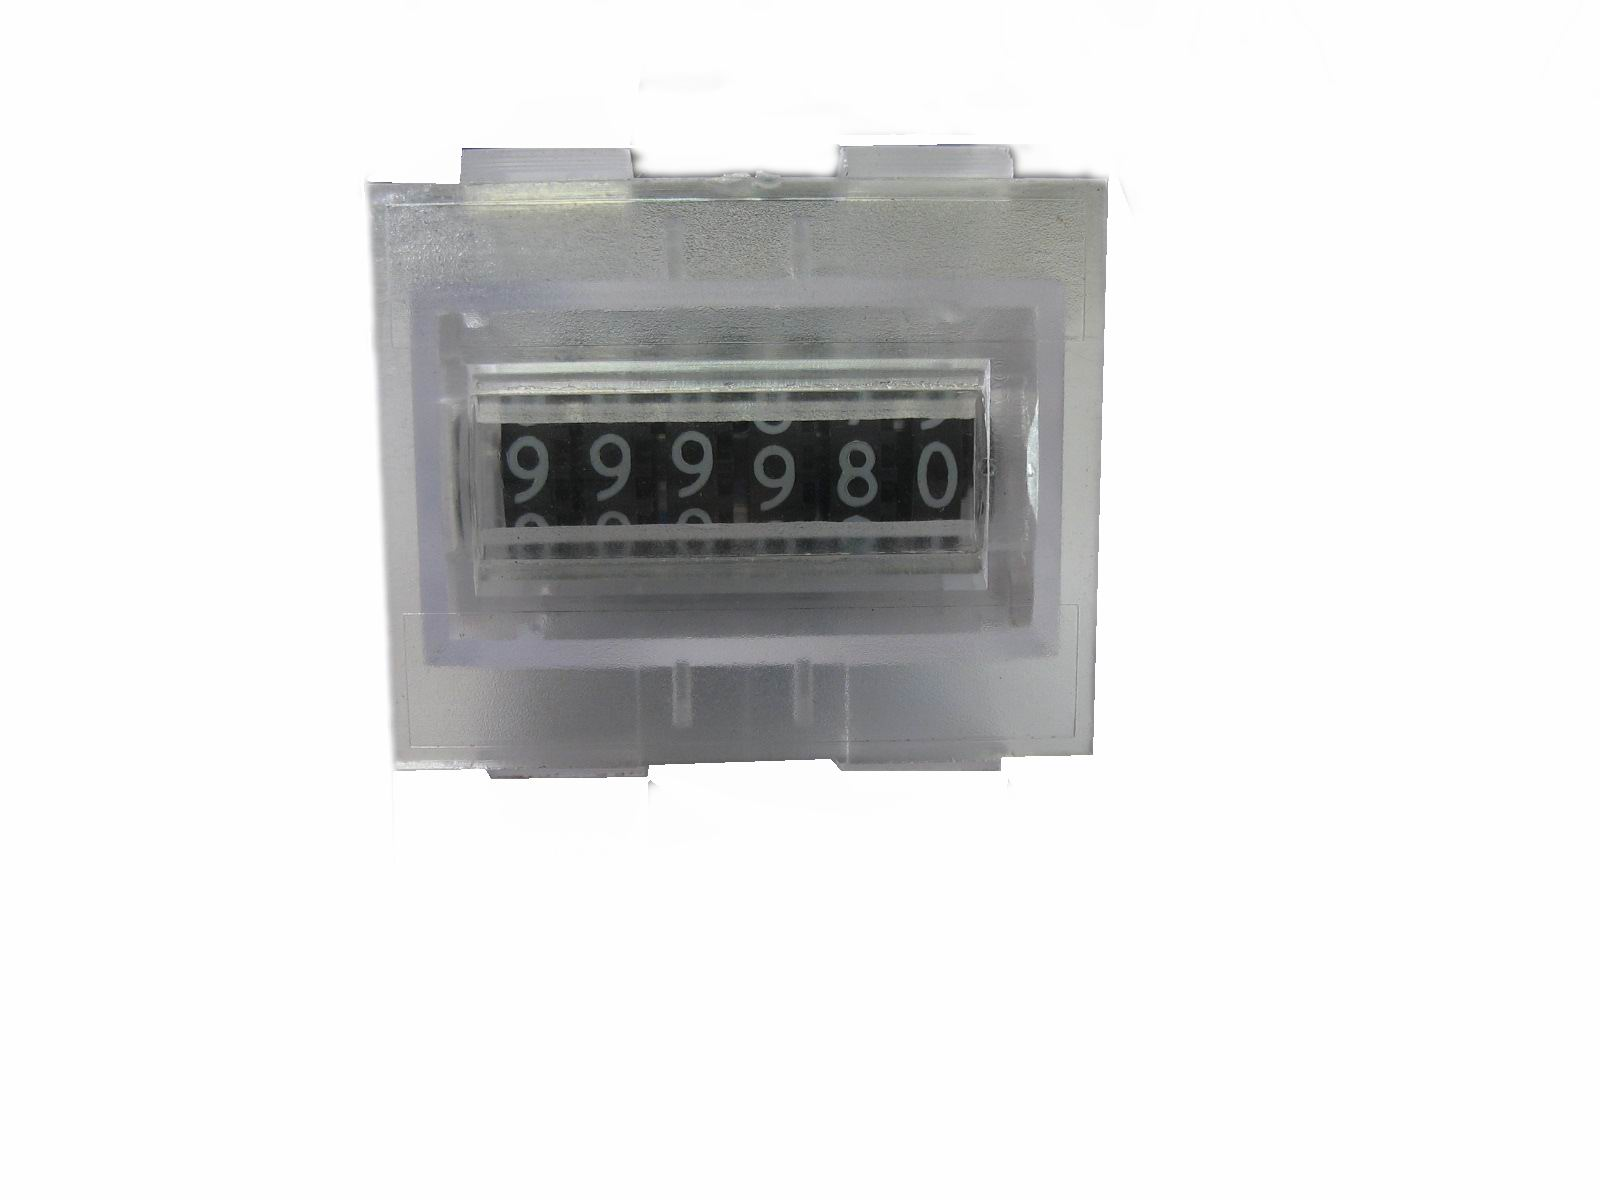 Yaoye-5B digital counter 12V 24V 110V 220V